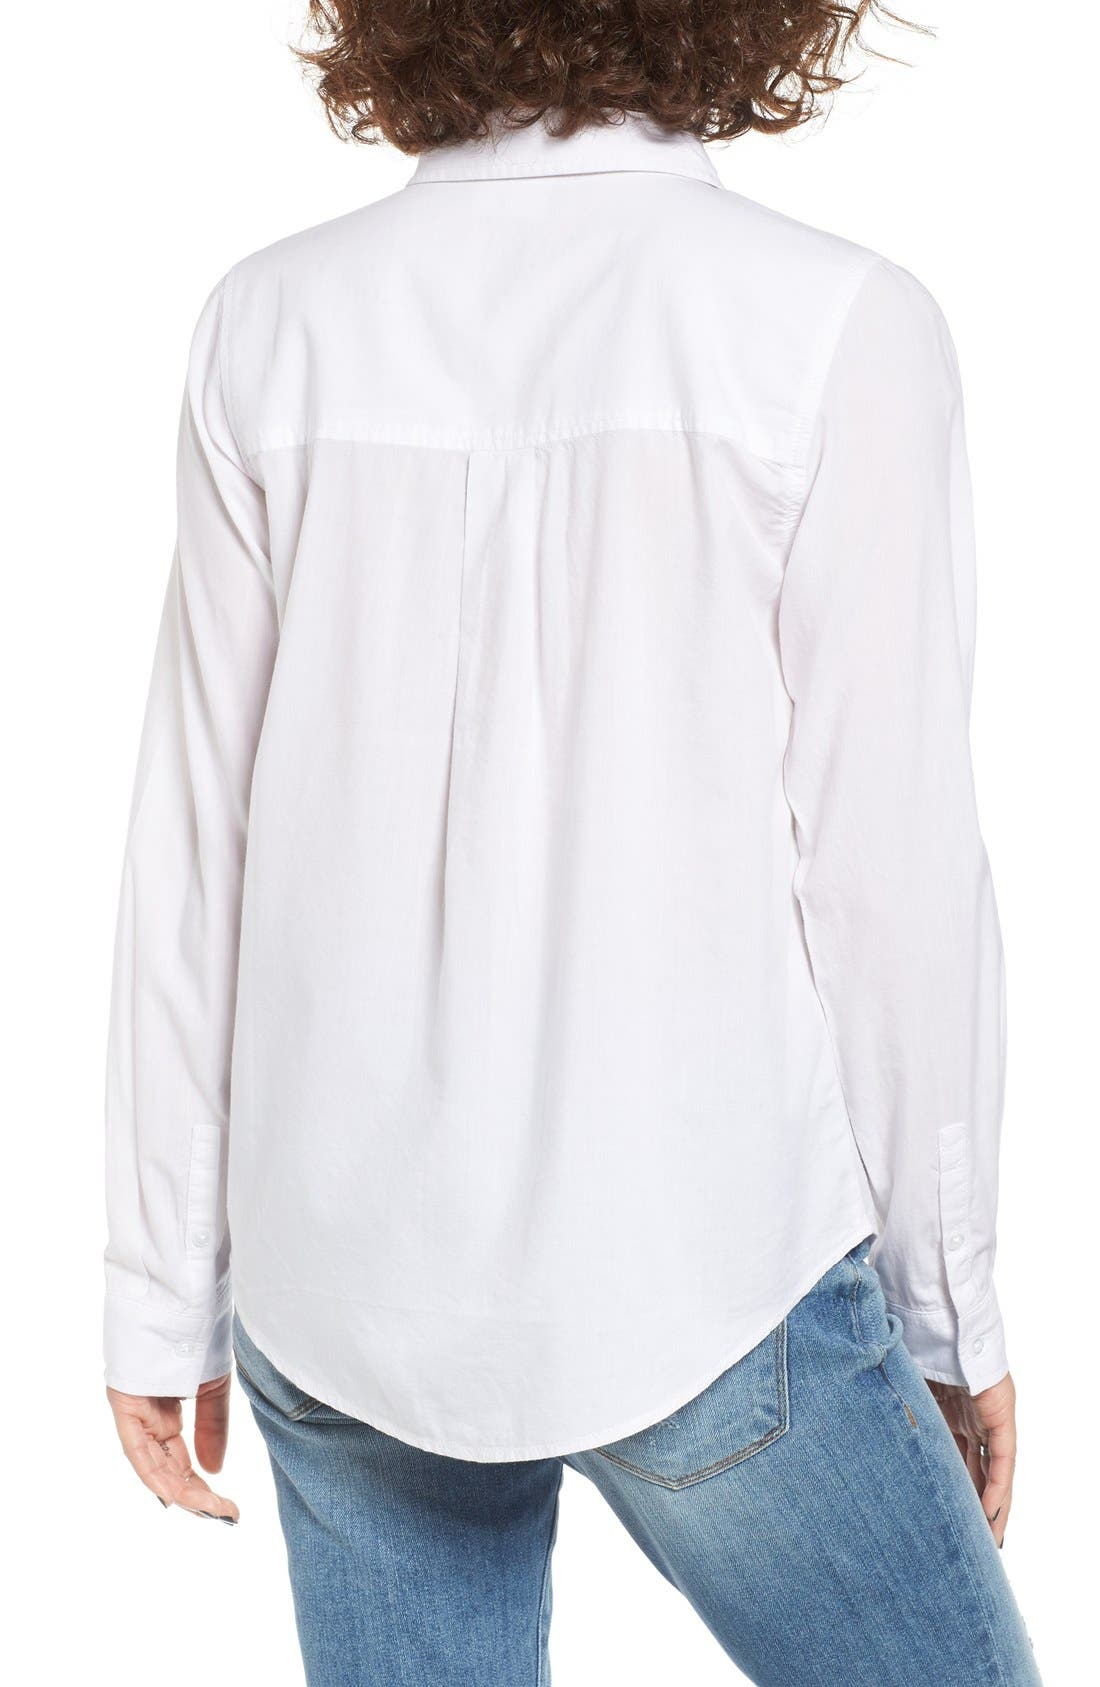 Cotton Blend Button Down Shirt,                             Alternate thumbnail 3, color,                             White